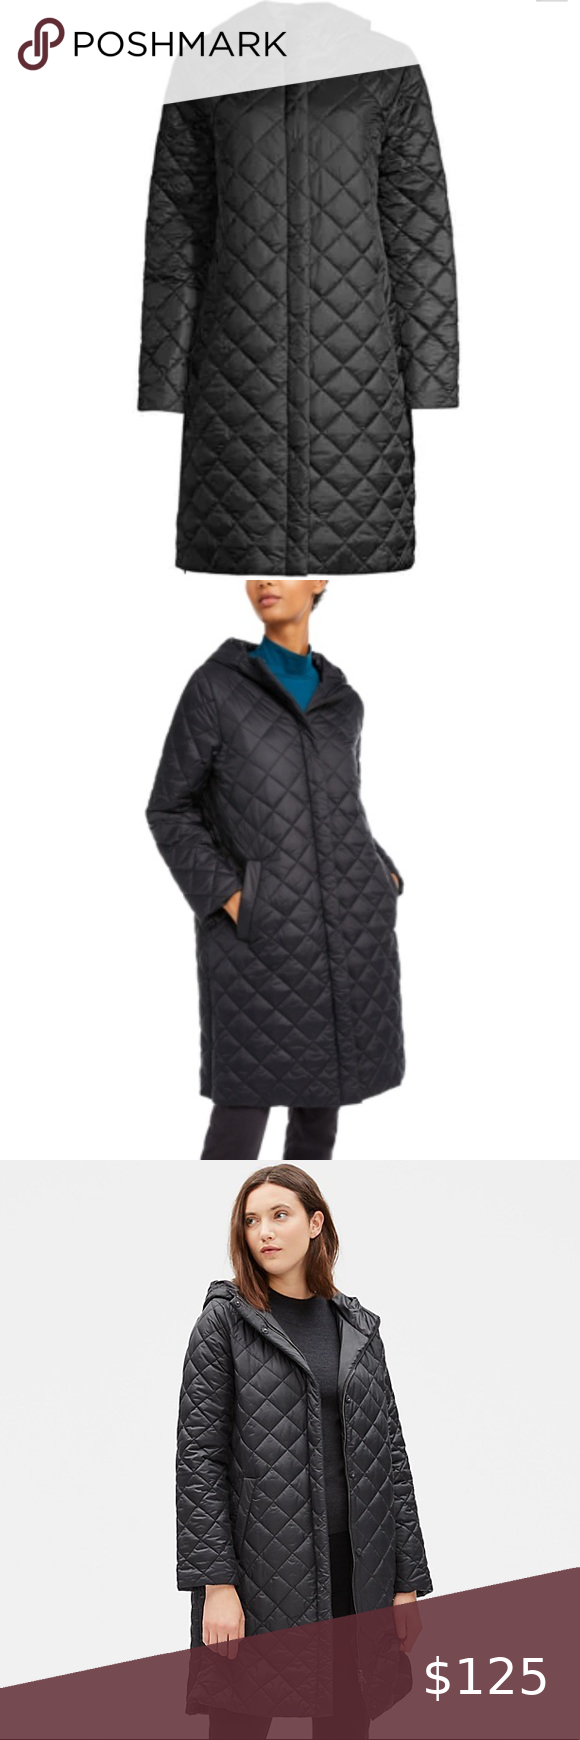 Eileen Fisher Hooded Diamond Quilted Black Coat Perfect Black Coat Love The Eileen Fisher Brand The Softness Of This Black Coat Clothes Design Quilted Coat [ 1740 x 580 Pixel ]